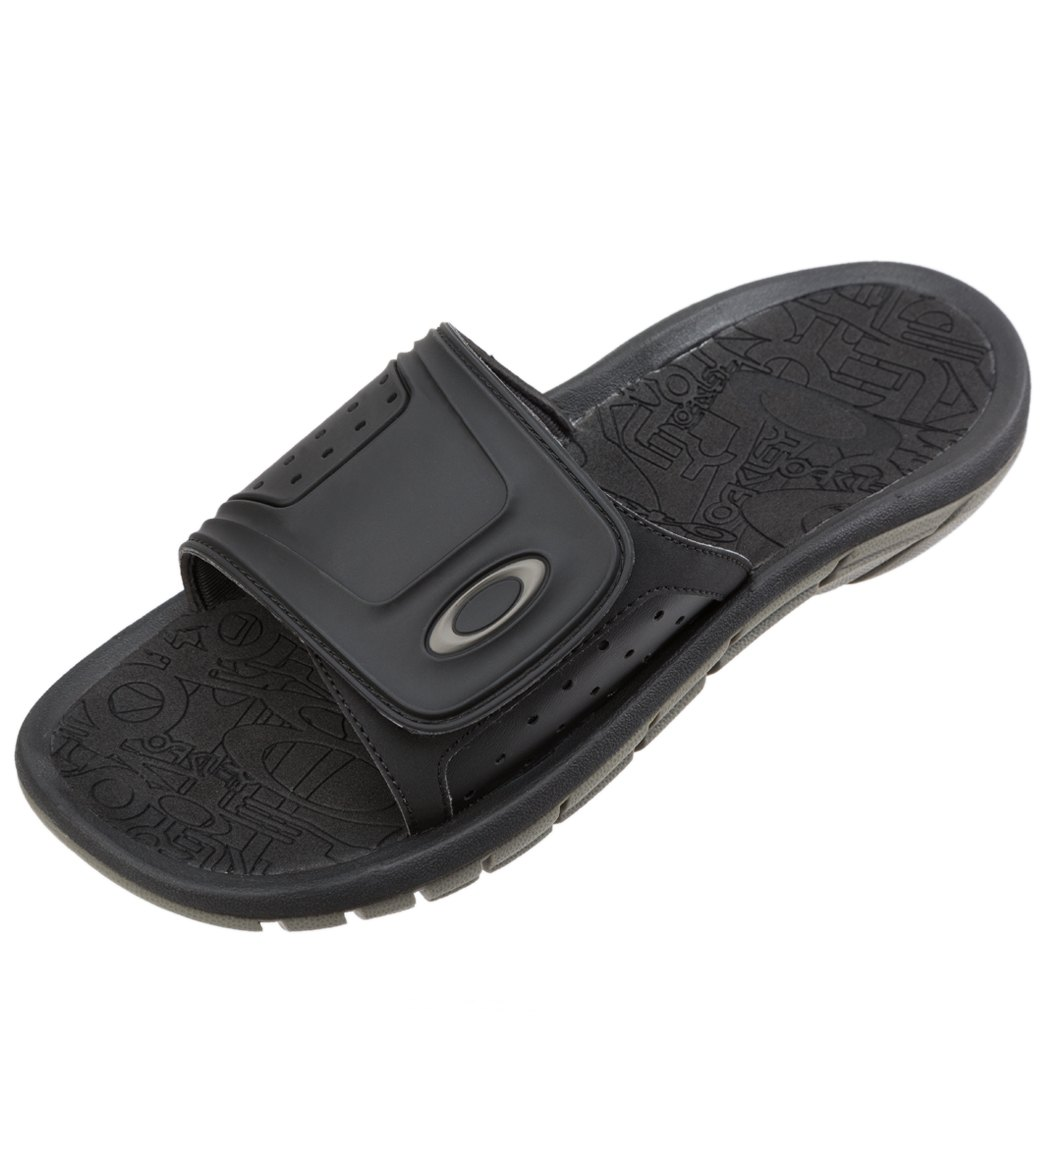 faacb89cd8c Oakley Men s Supercoil Slide Sandals at SwimOutlet.com - Free ...